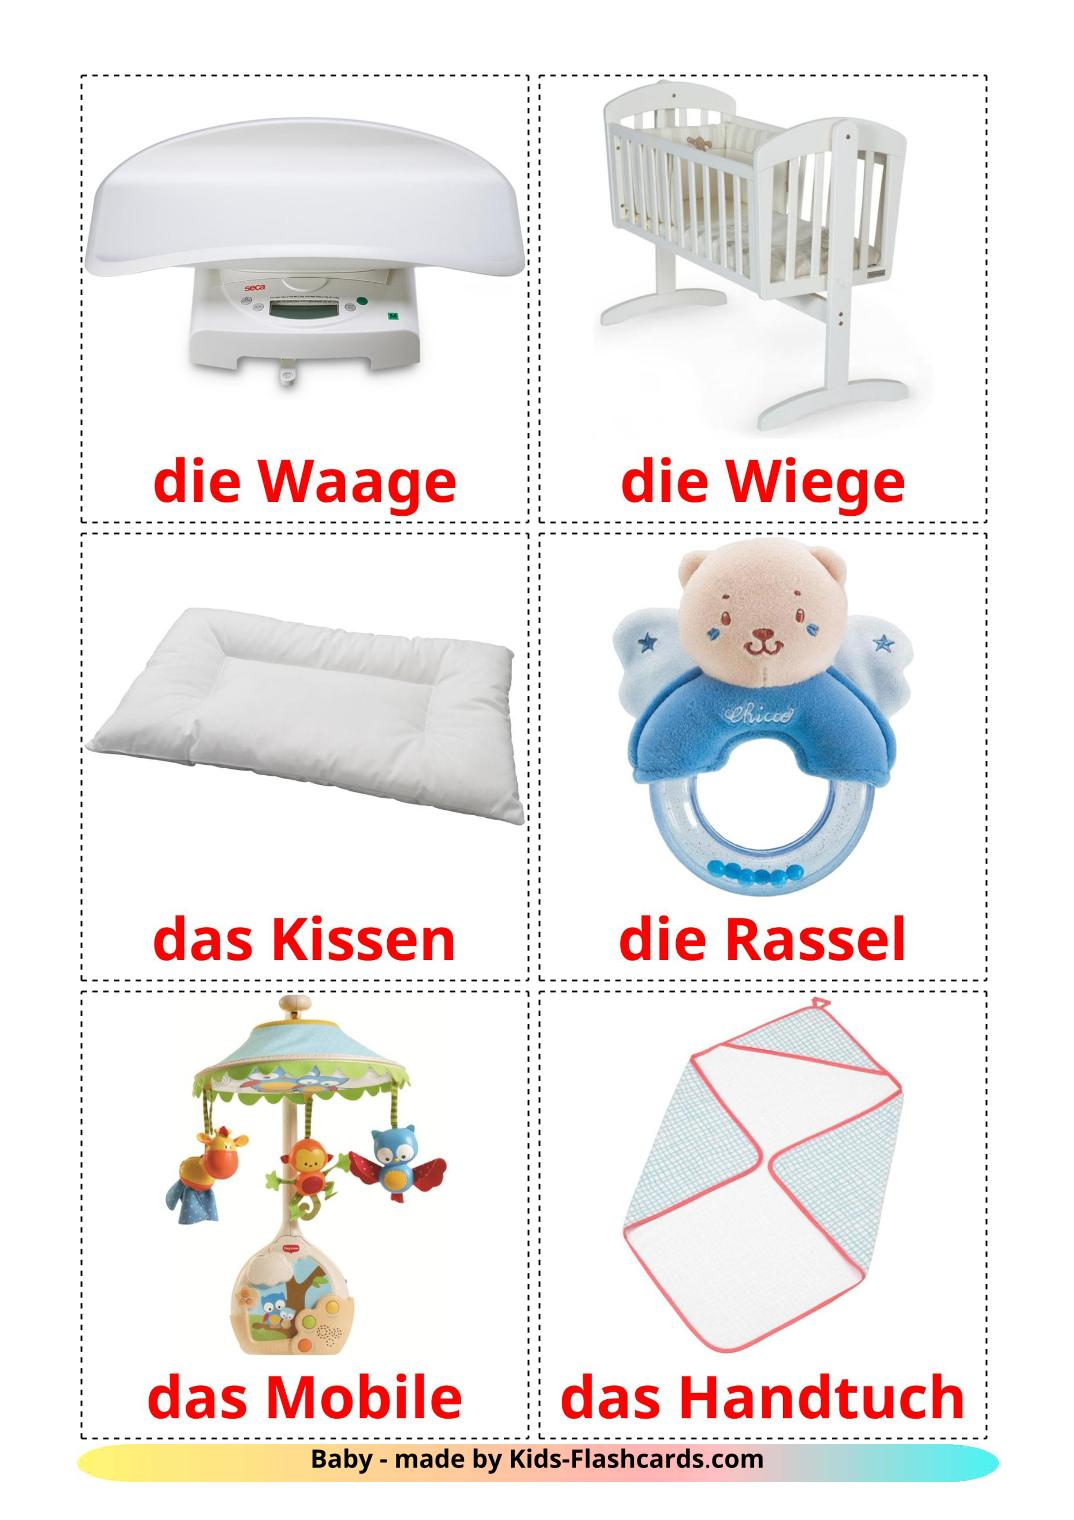 My Things - 20 Free Printable german Flashcards